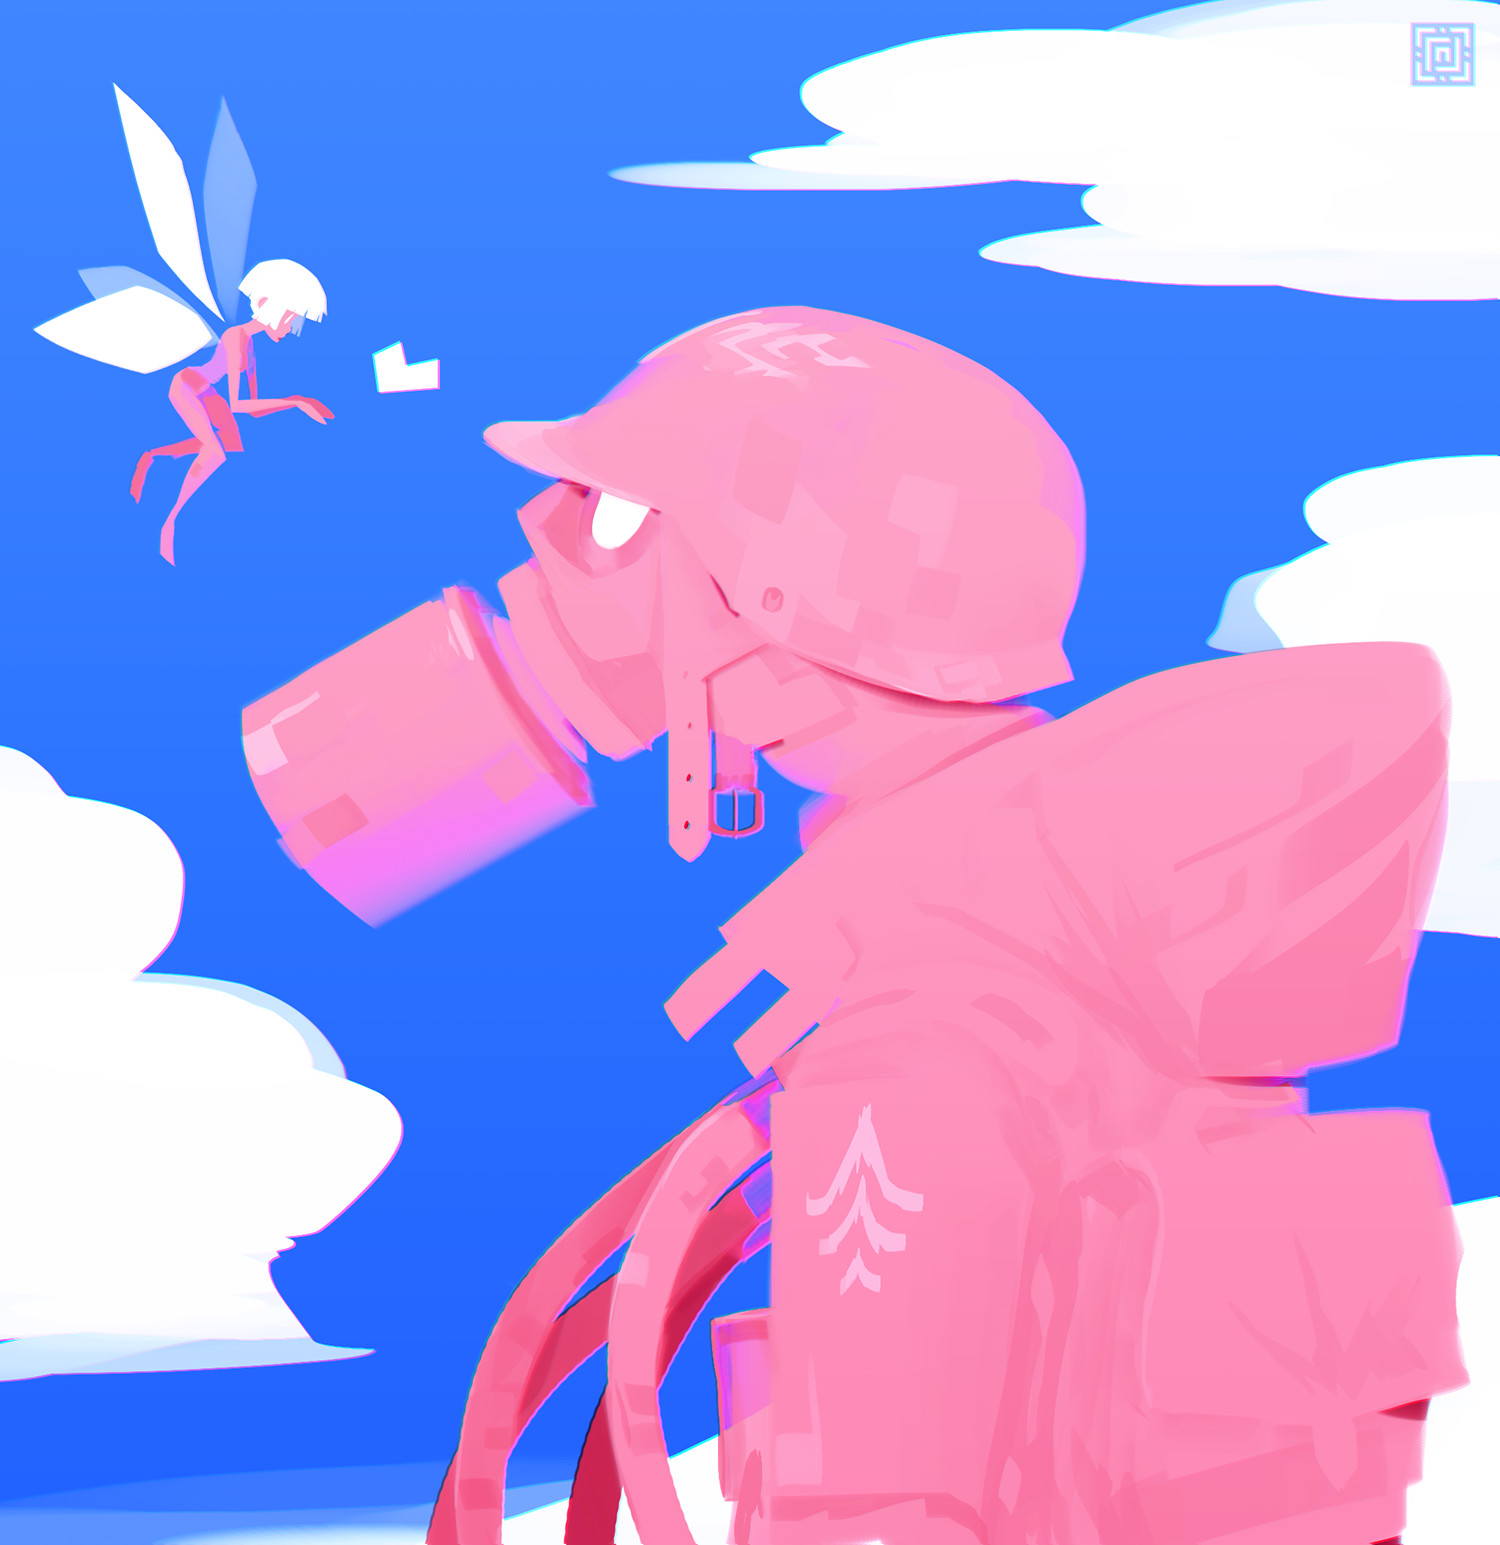 Deadslug_digital_painting_illustration_pink_soldier_helmet_fairy